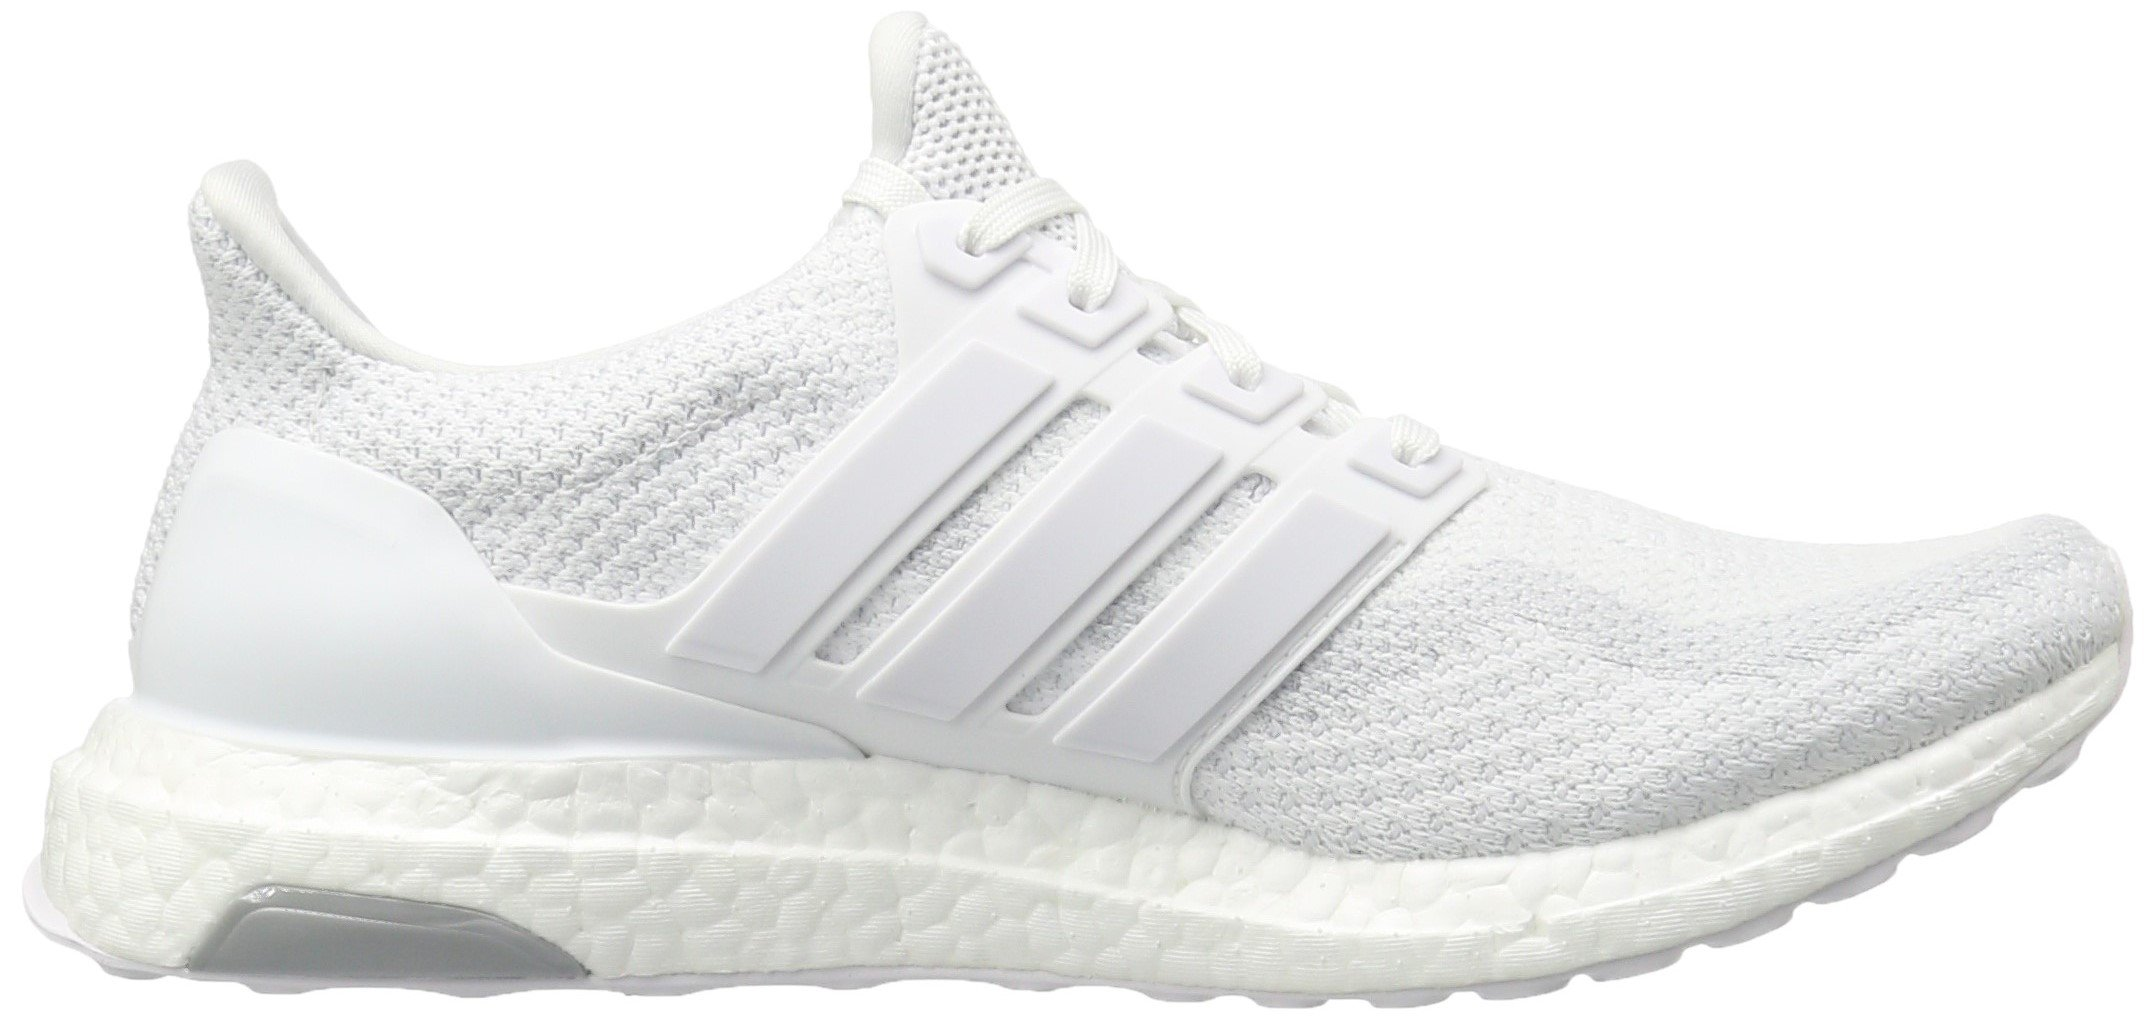 71N7mbM1UvL - adidas Ultra Boost M, Men's Competition Running Shoes Multicolour Size: 8 UK M Crystal White